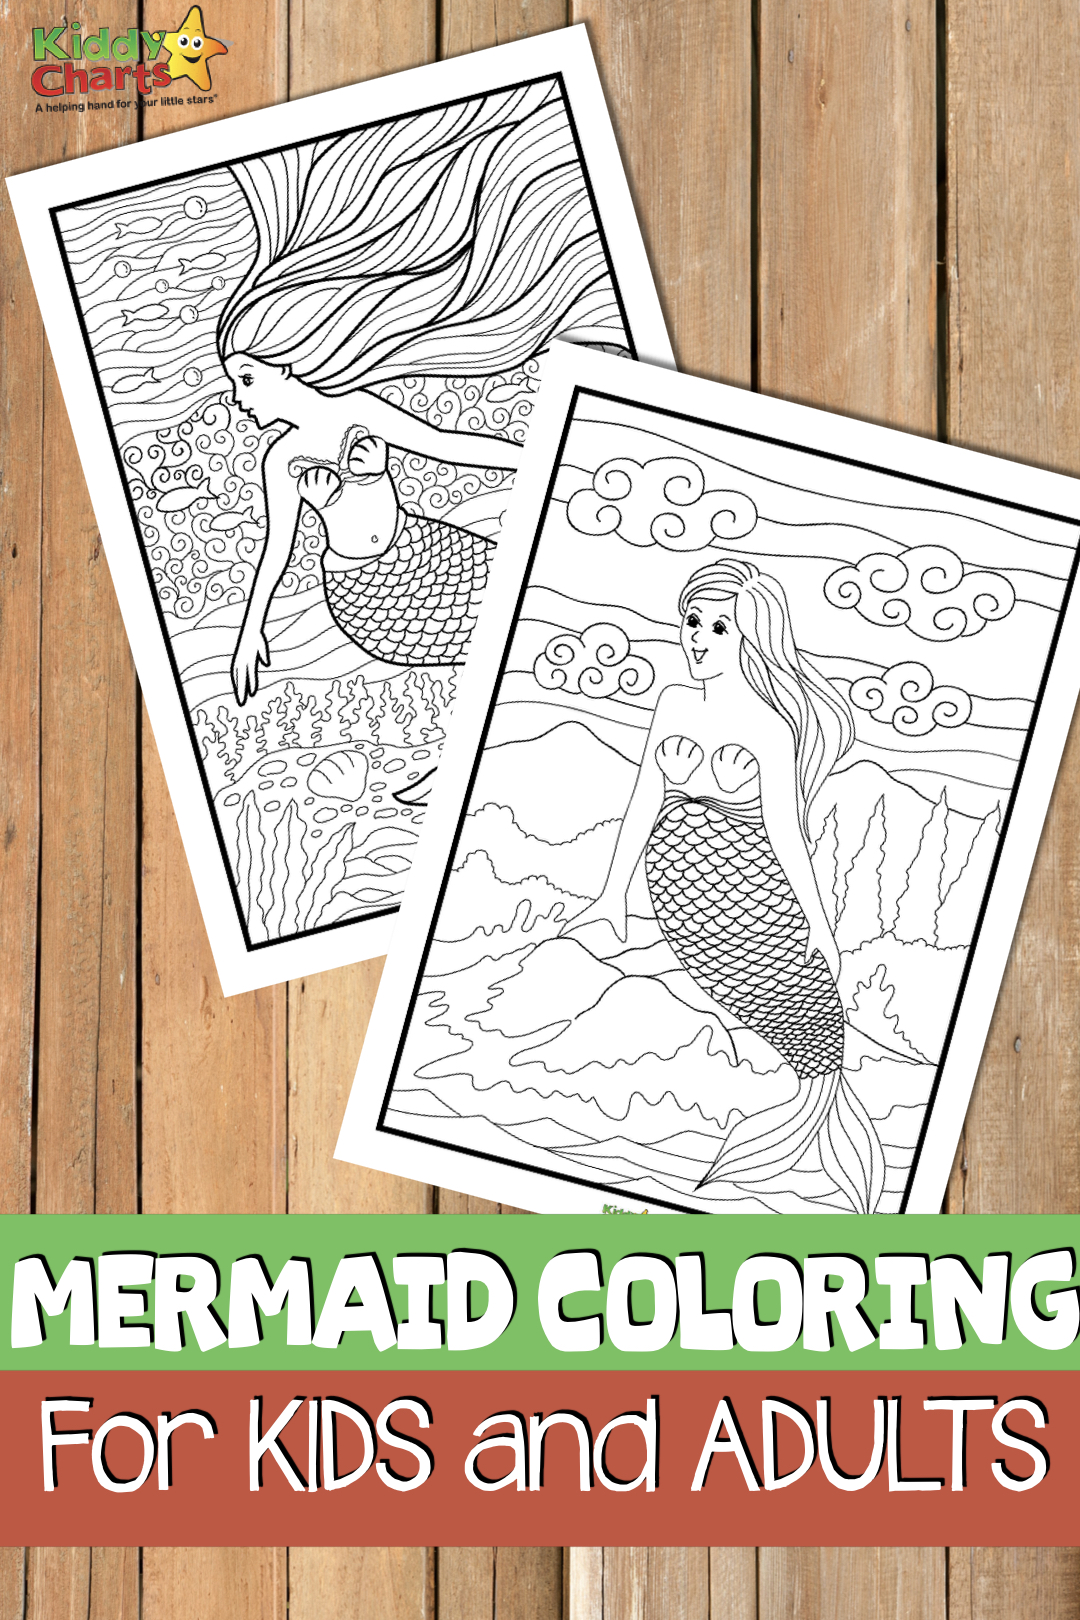 We have some gorgeous mermaid coloring pages for you today, both for adults and kids. We hope you love them; do check them out. #mermaids #coloring #coloringpages #adultcoloring #kidscoloring